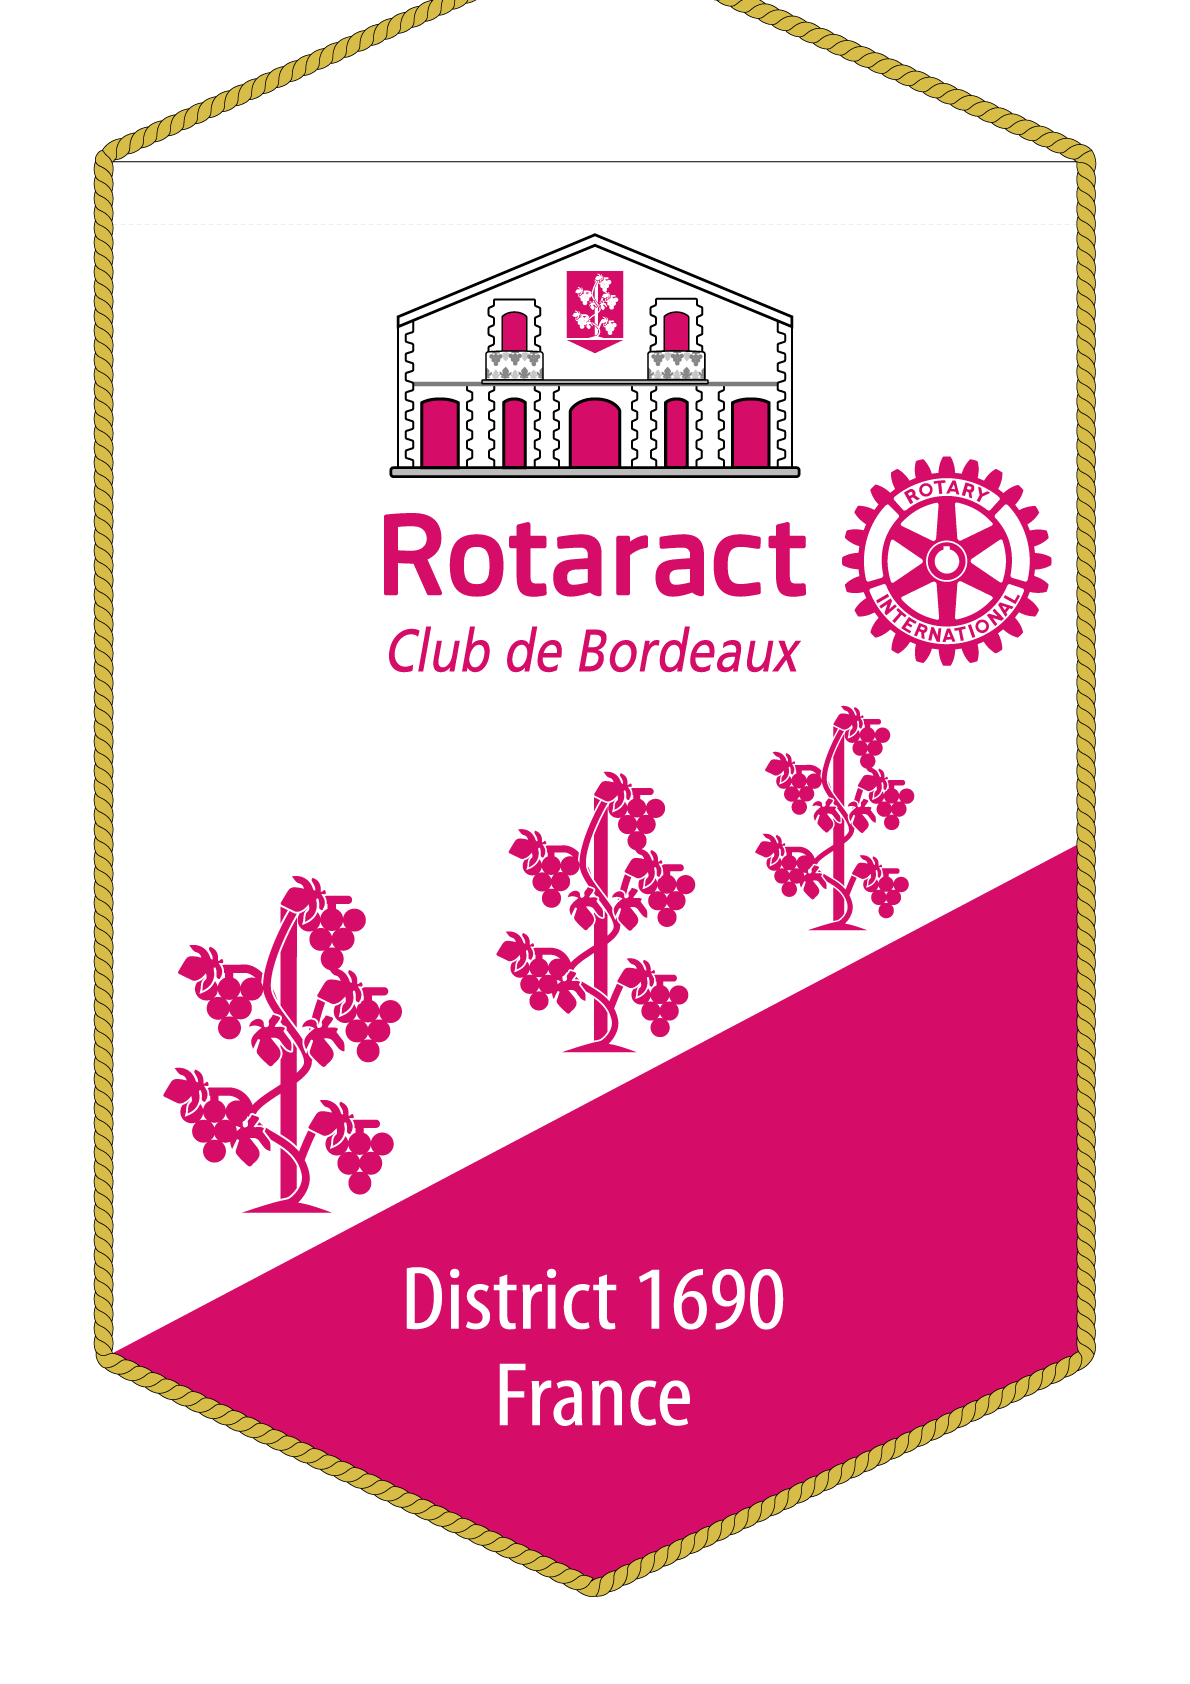 FANION ROTARACT CLUB BORDEAUX